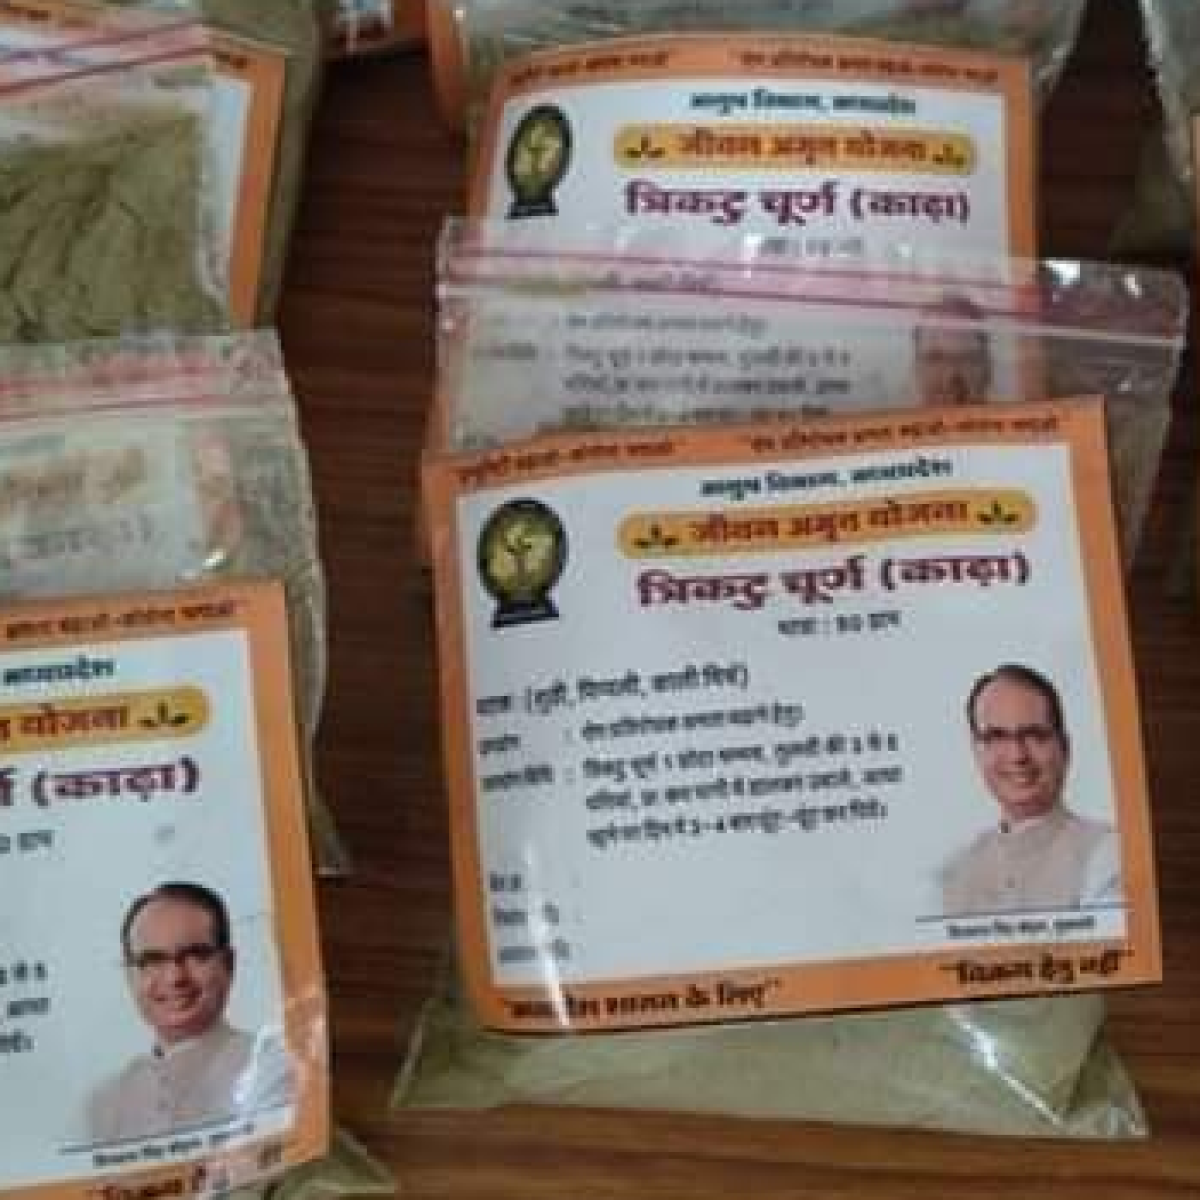 Madhya Pradesh: CM Shivraj Singh Chauhan distributes 'Karha' packets with his picture on it, Congress calls him 'campaign hungry'